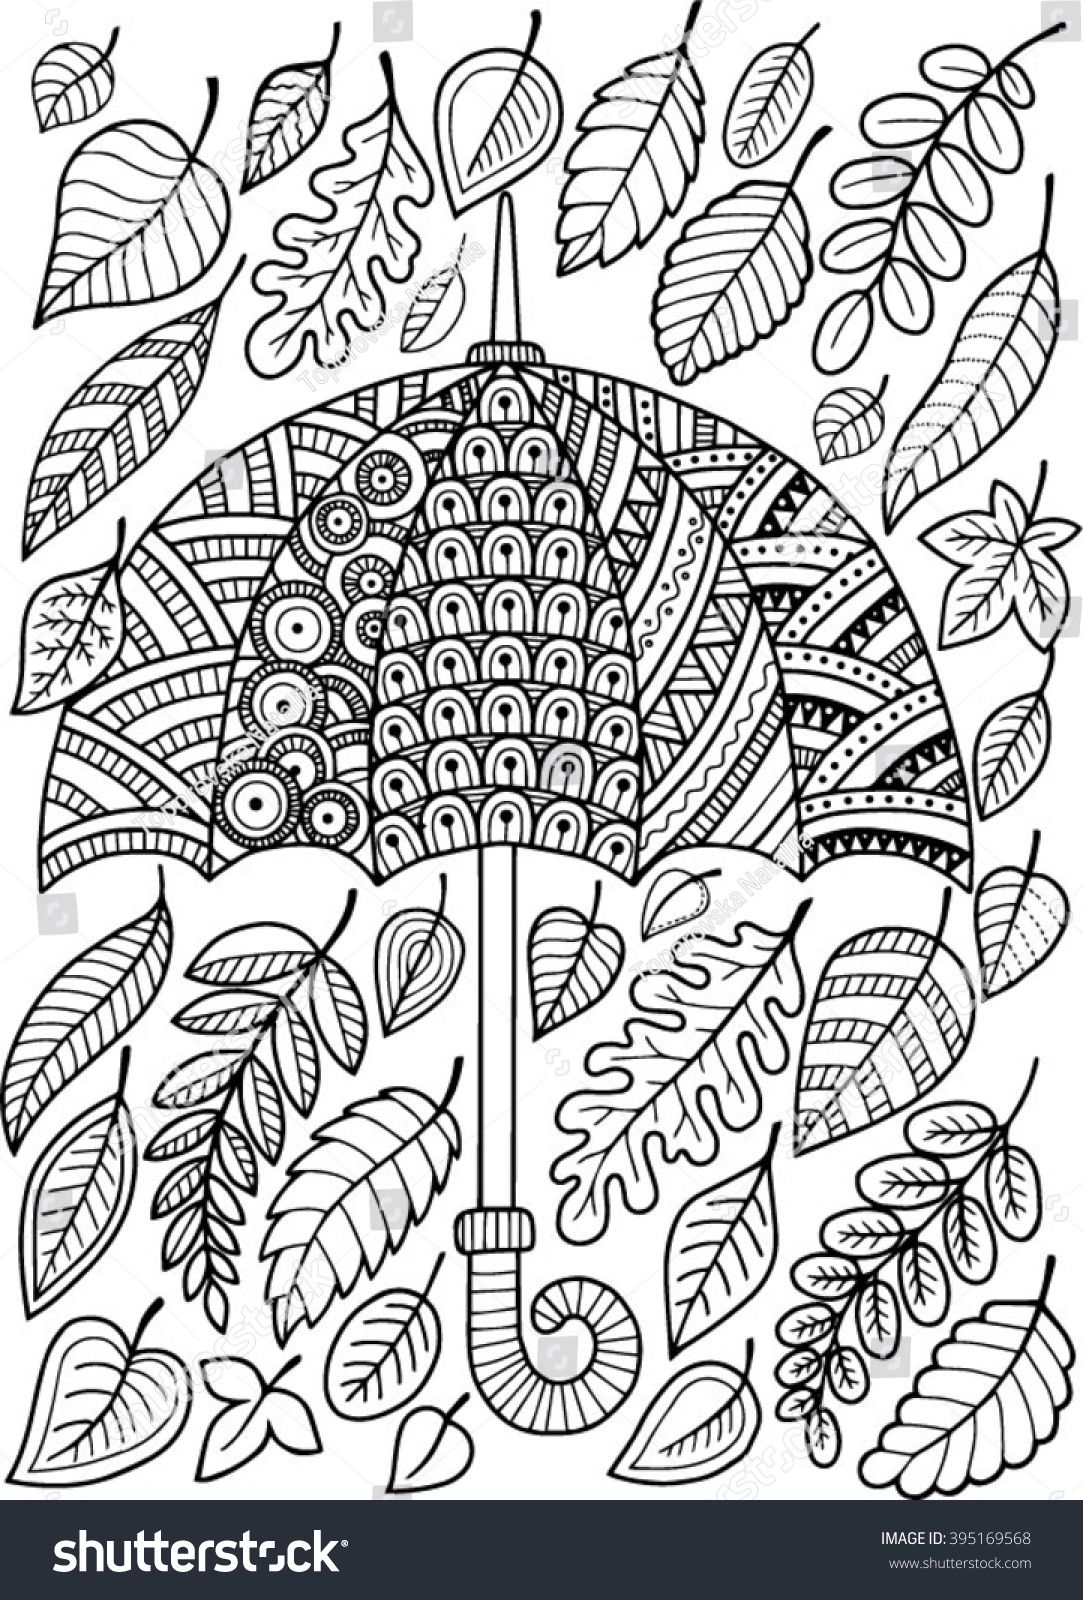 Hand draw vector doodle coloring page for adult I love Autumn An